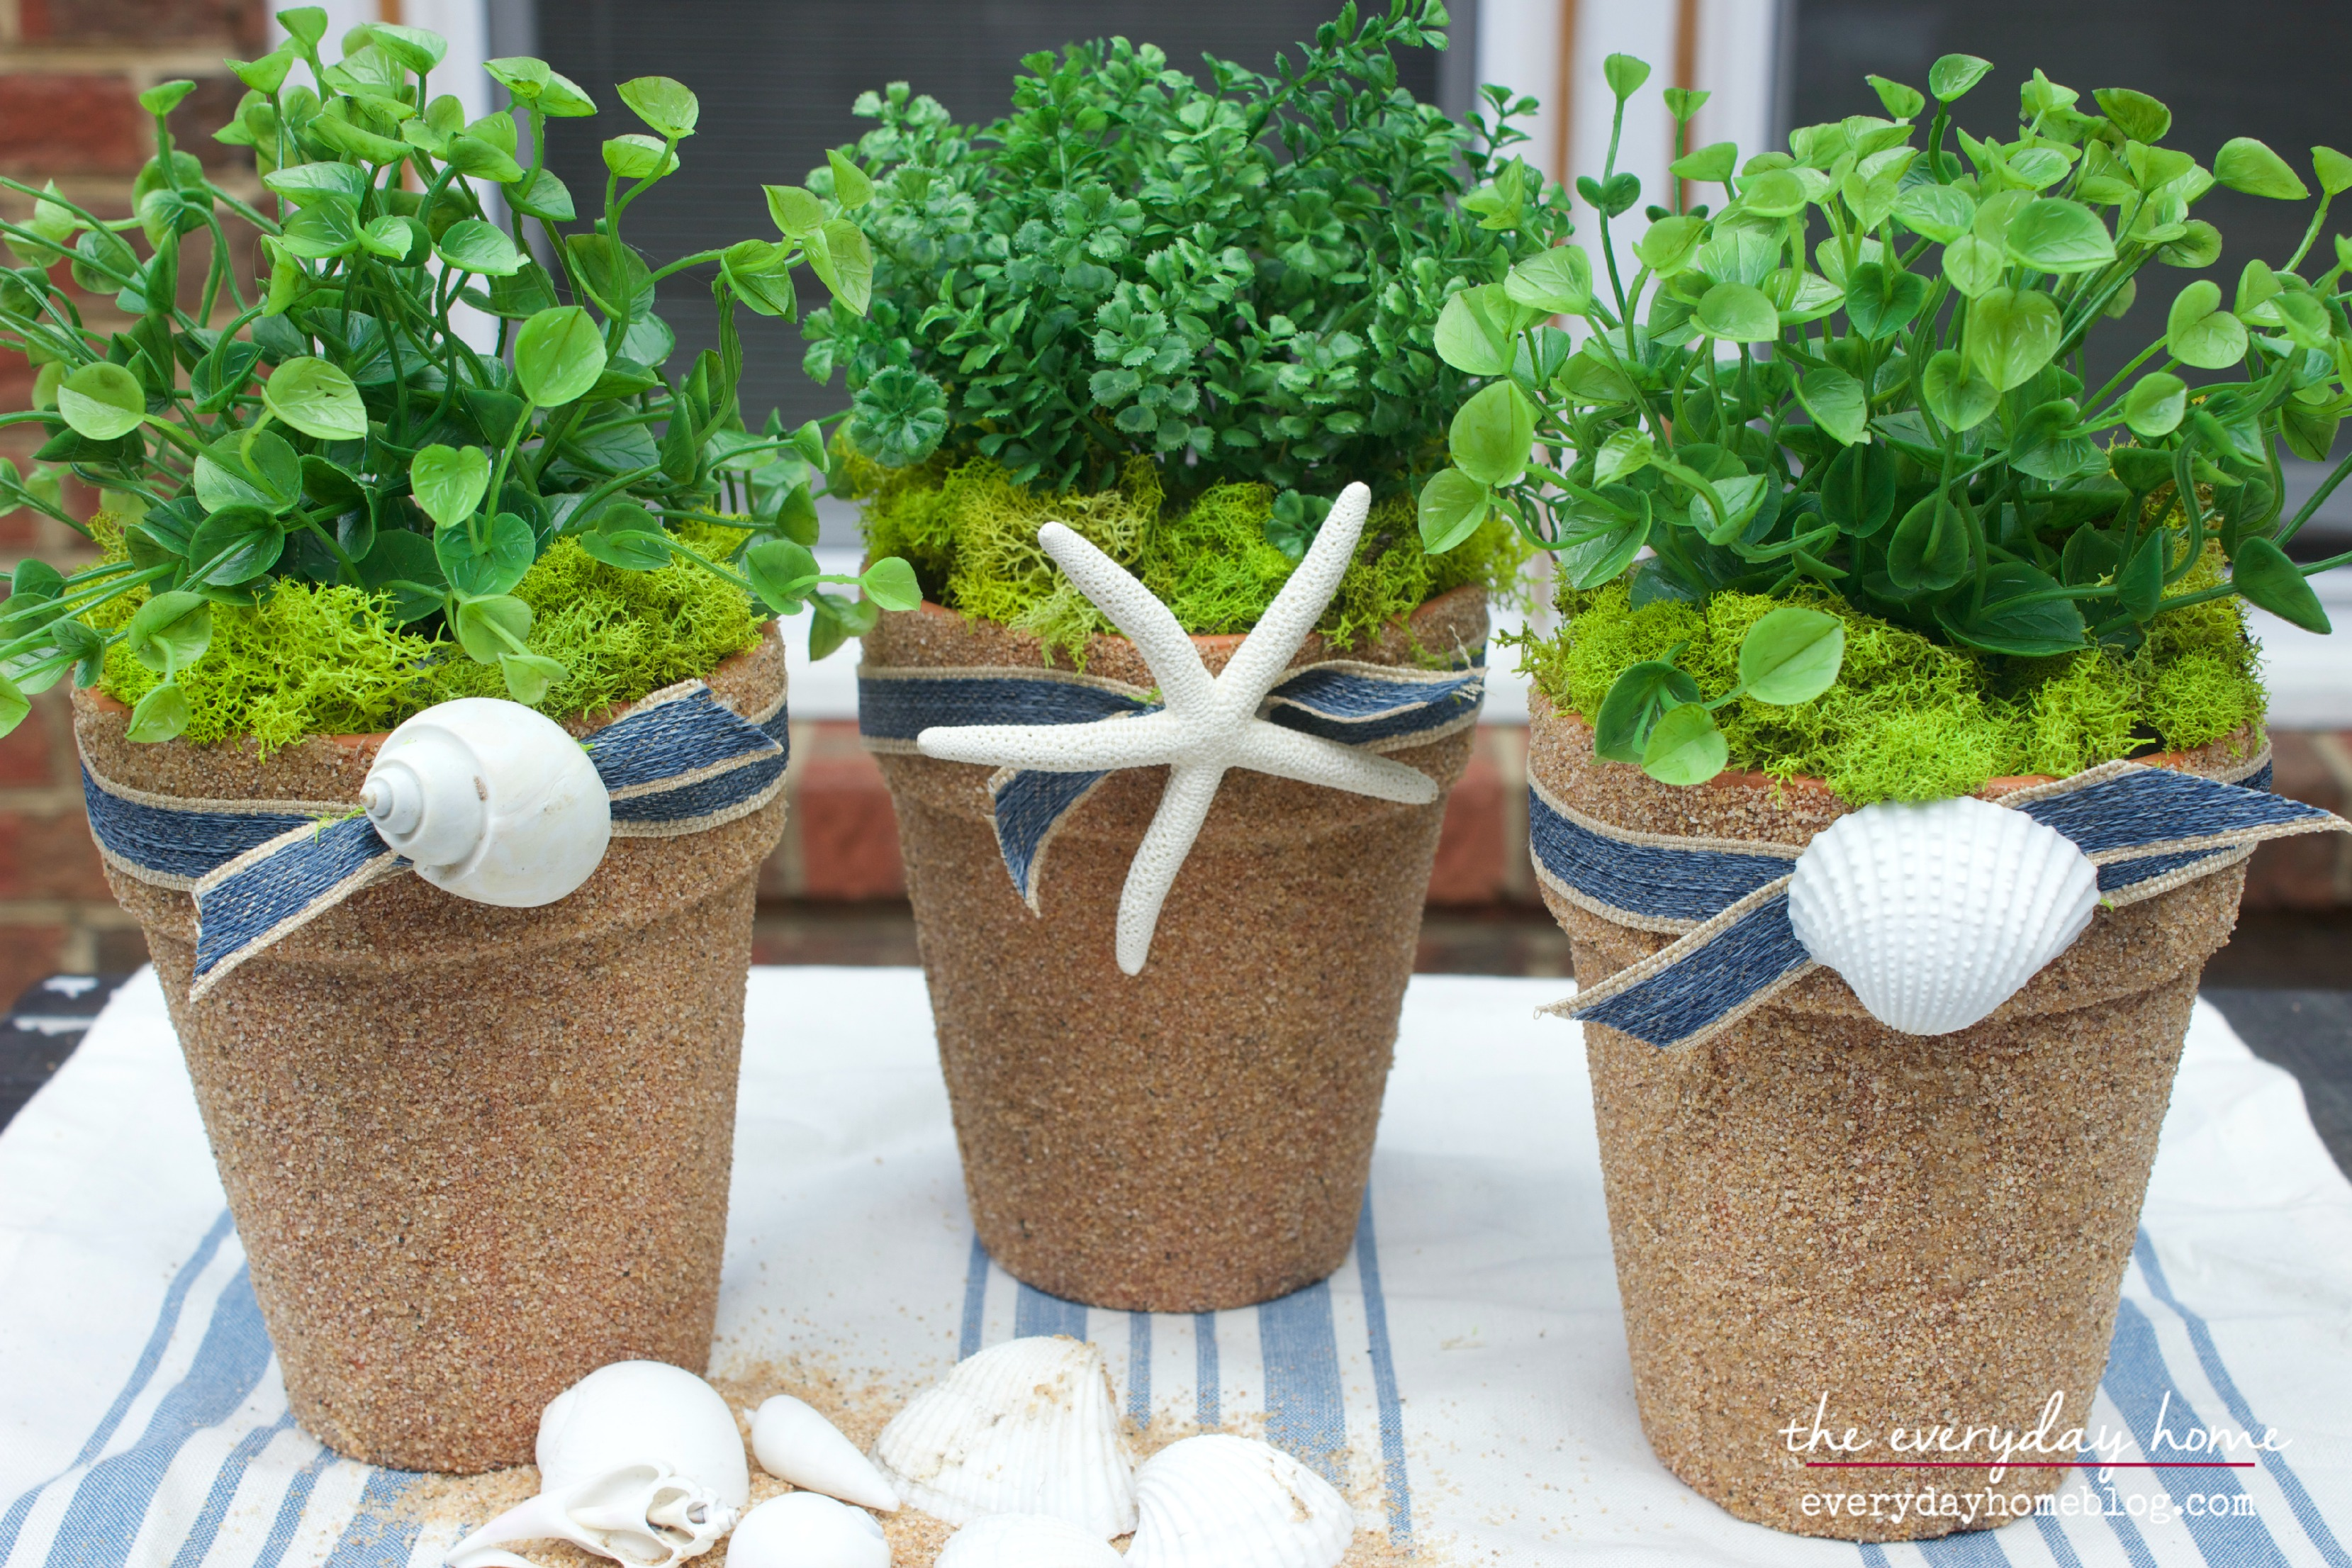 These coastal inspired flower pots adorned with seashells are adorable.